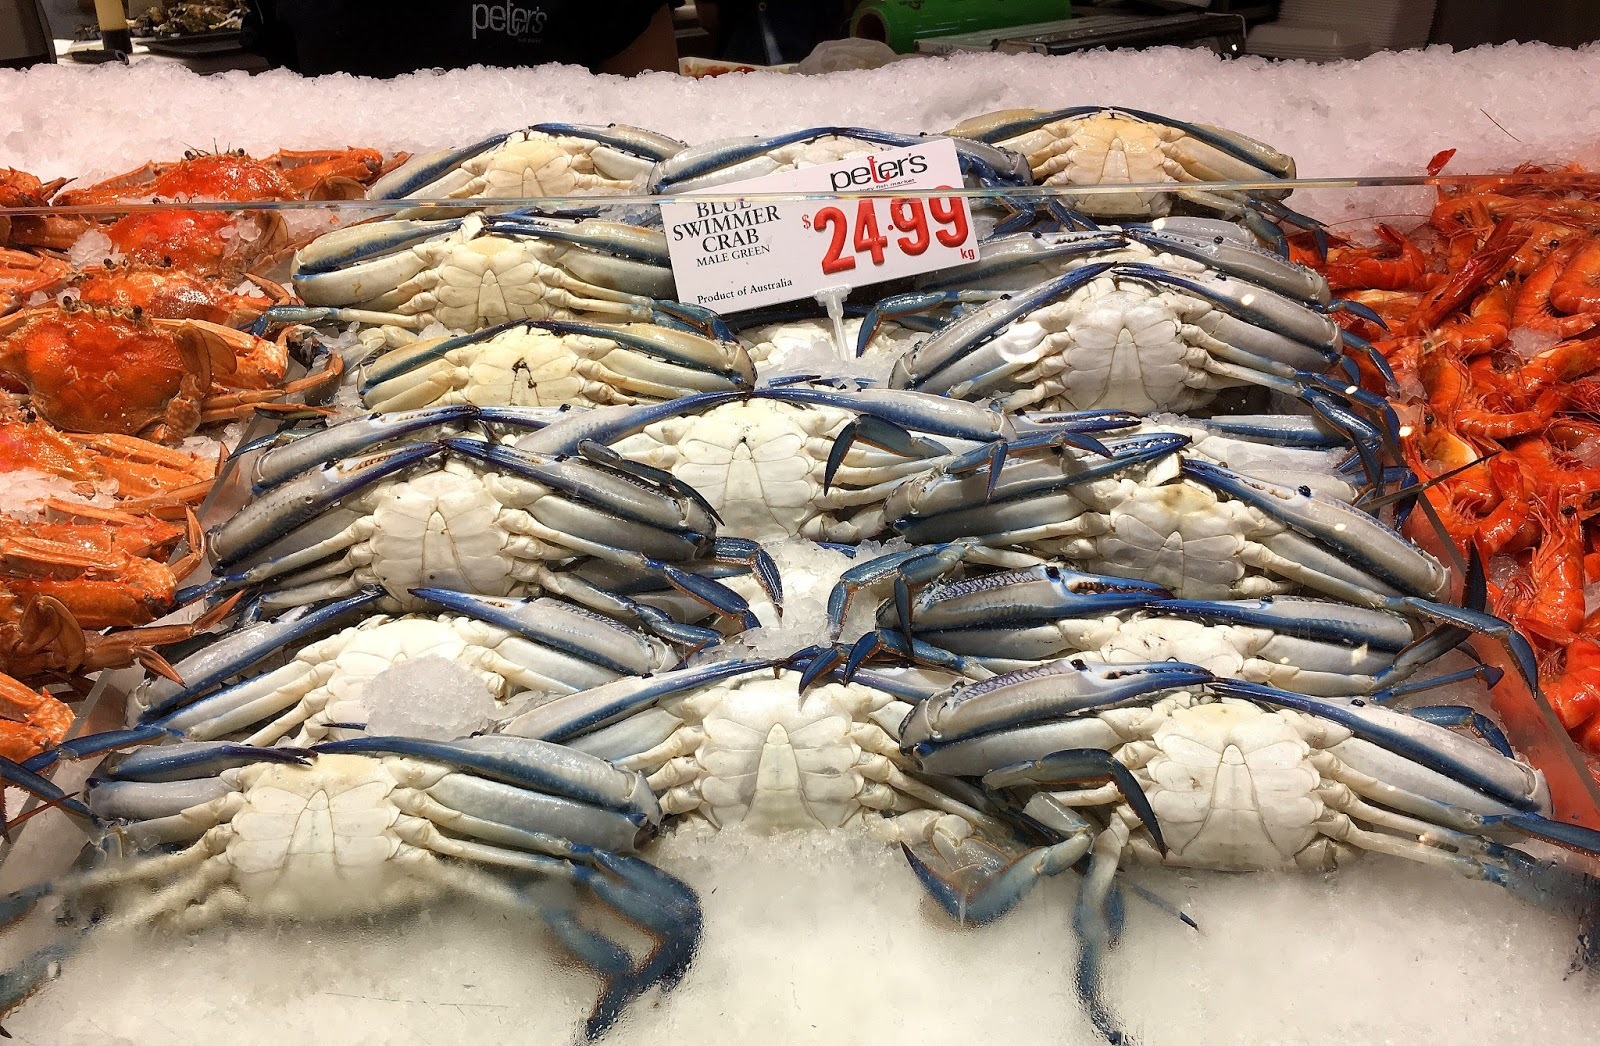 Sydney Fish Market is proudly promoting reasonably harvested nutritious seafood. Make it a day with behind the scenes tour and cooking classes while enjoying delicious seafood.